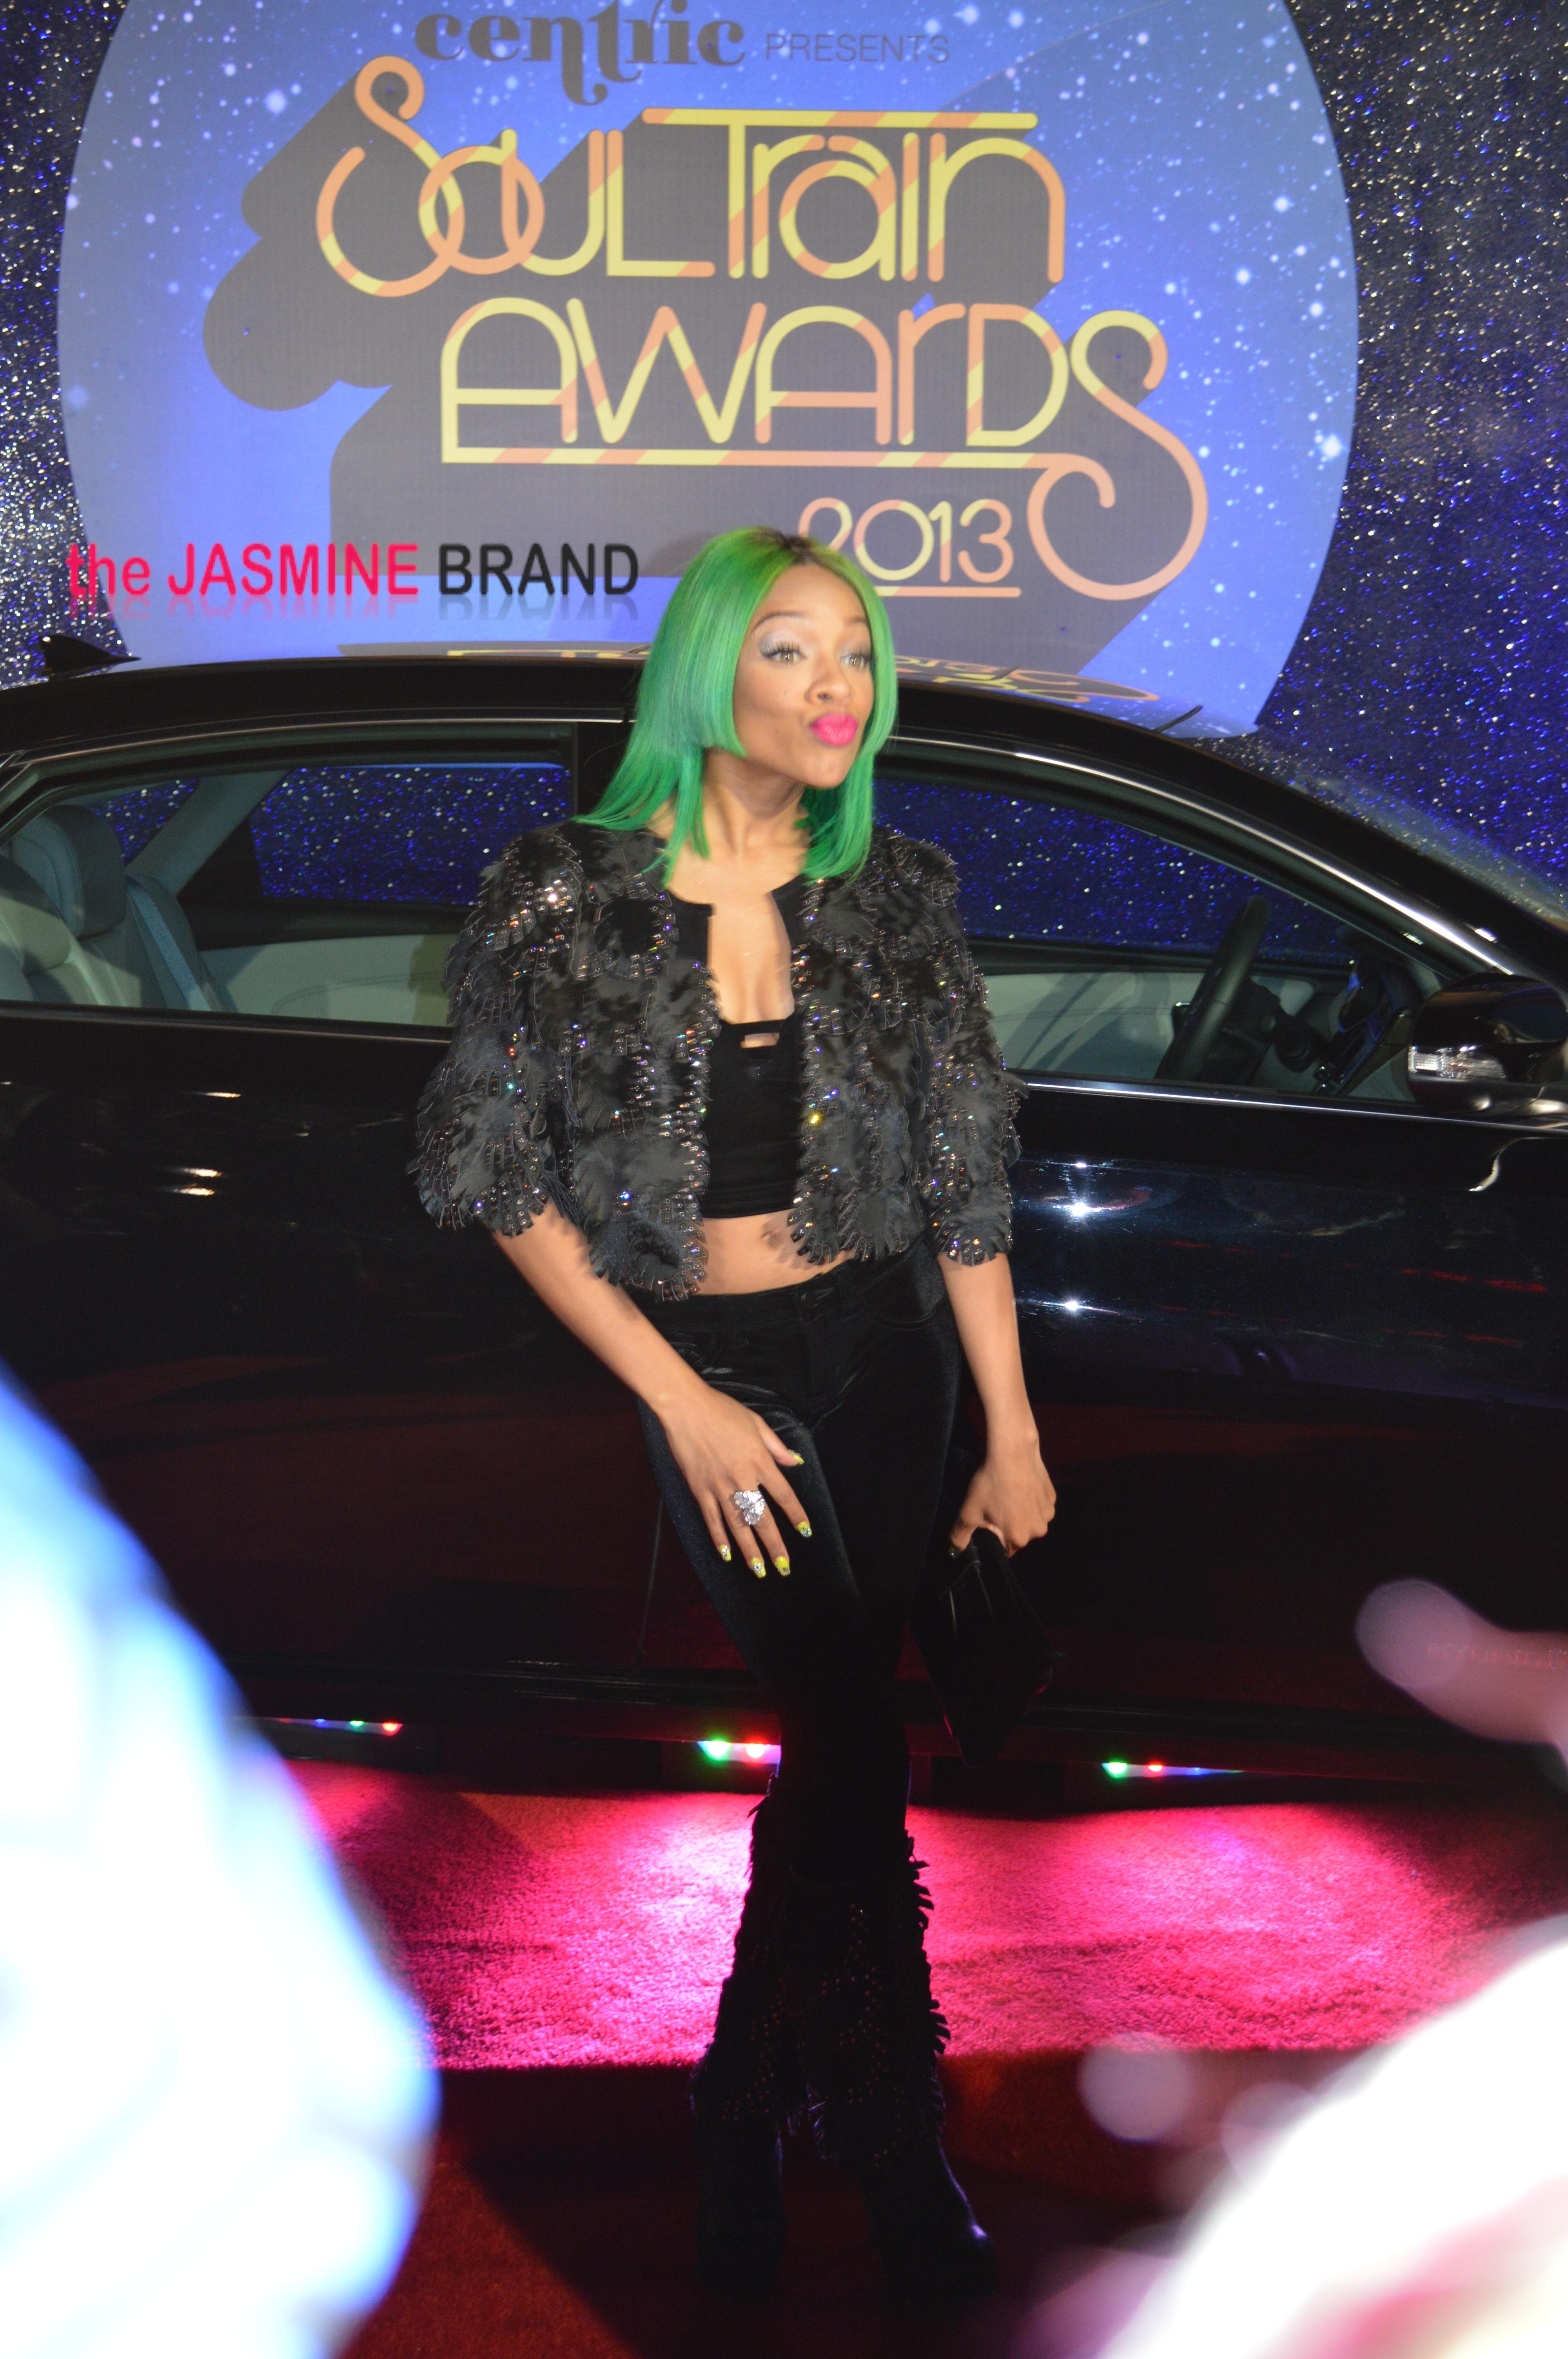 lil mama-soul train awards 2013-the jasmine brand